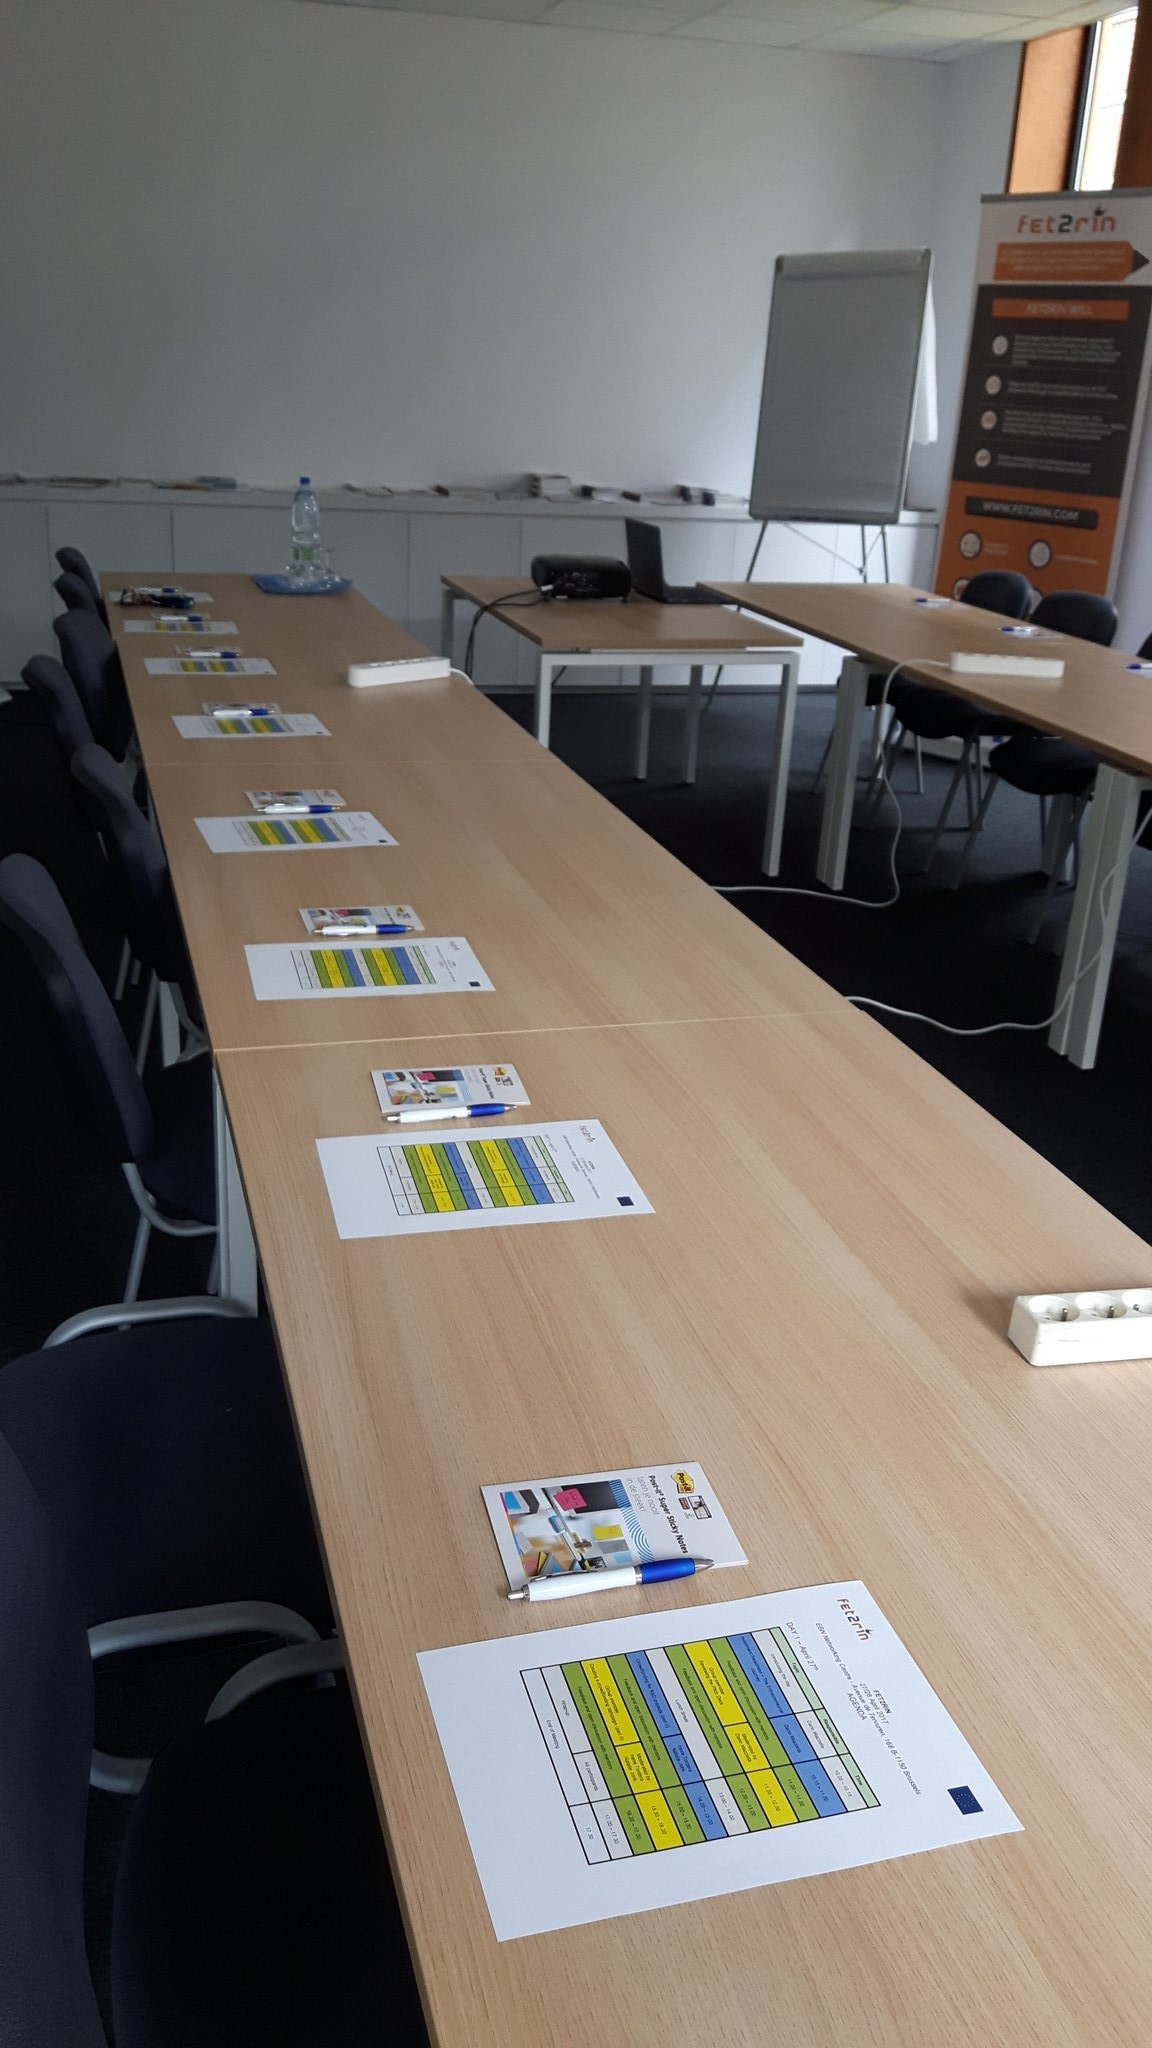 Getting ready to host @fet_eu projects participating to the @Fet2Rin training to get ready to #pitch in front of investors @FETFlagship https://t.co/MogkbRnyu3